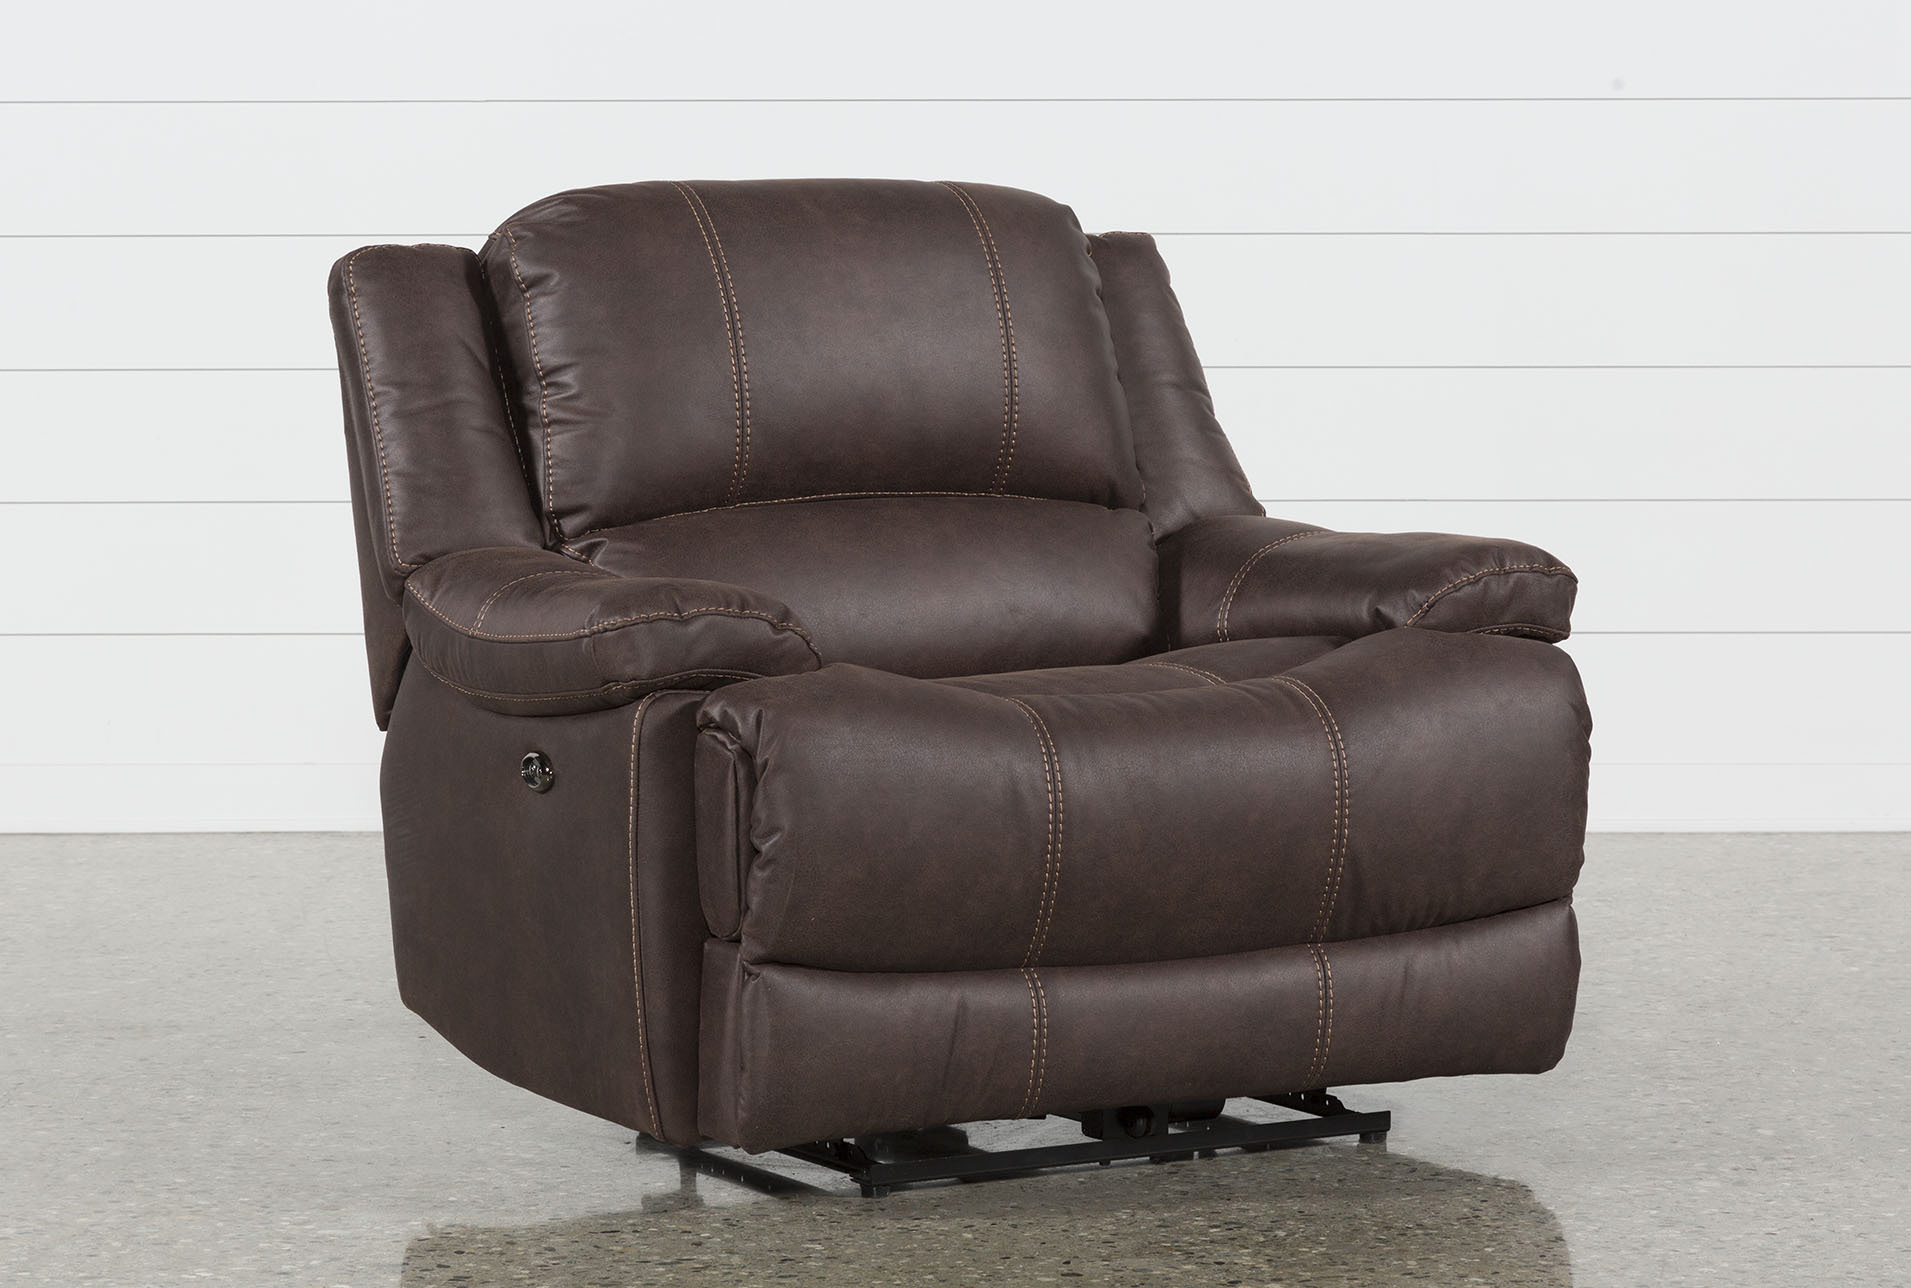 Importance Of Recliner Chairs Carehomedecor